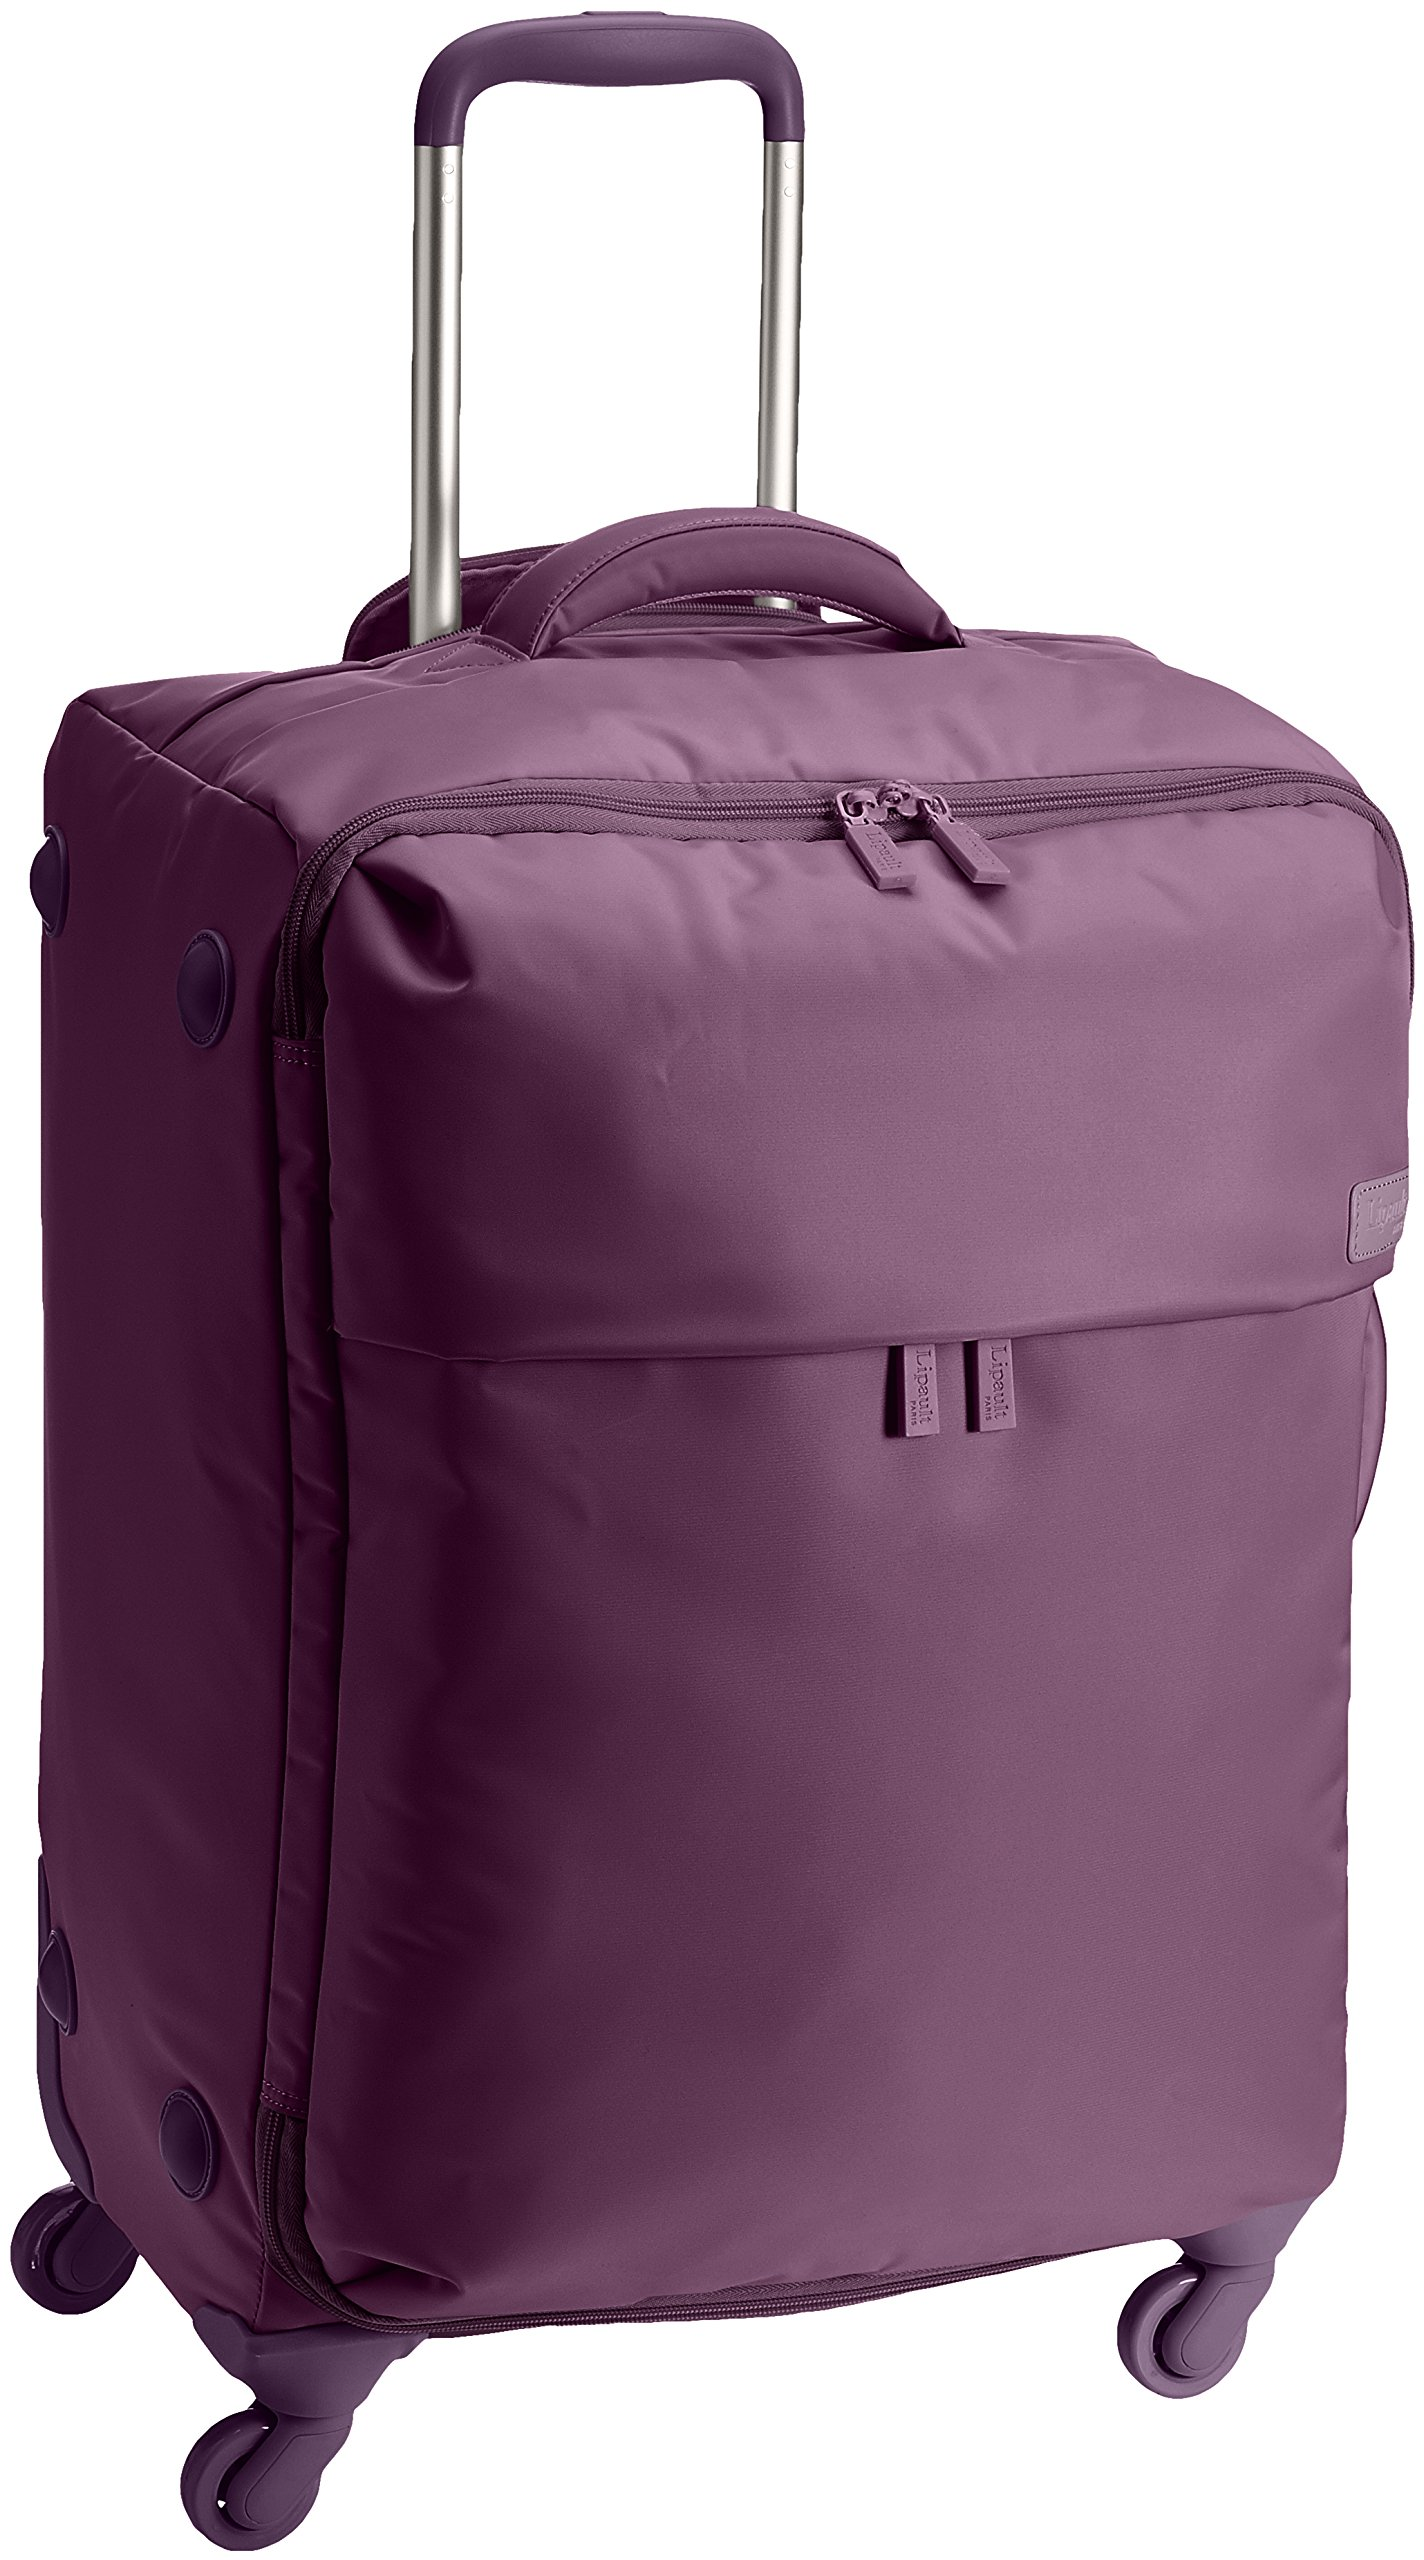 Lipault Luggage Original Plume 20'' Spinner Suitcase,Purple,One Size by Lipault